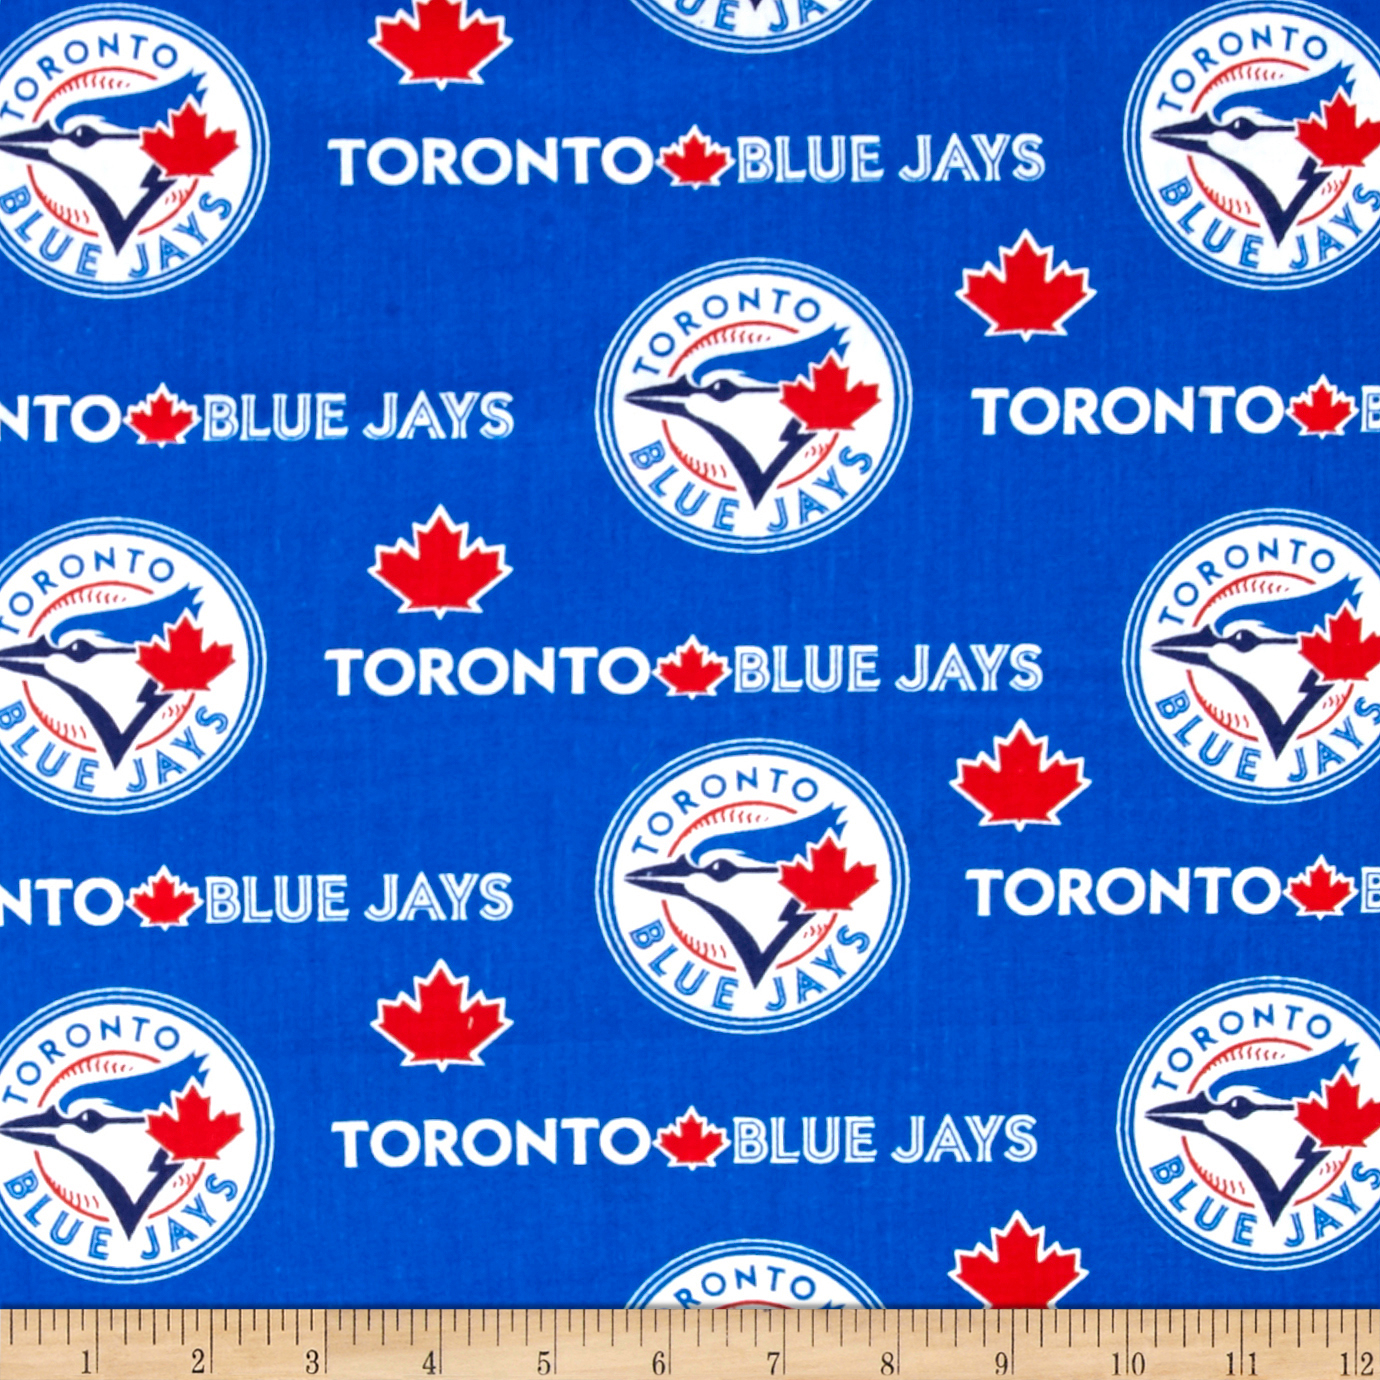 Toronto Blue Jays Cotton Broadcloth Blue Fabric by Fabric Traditions in USA